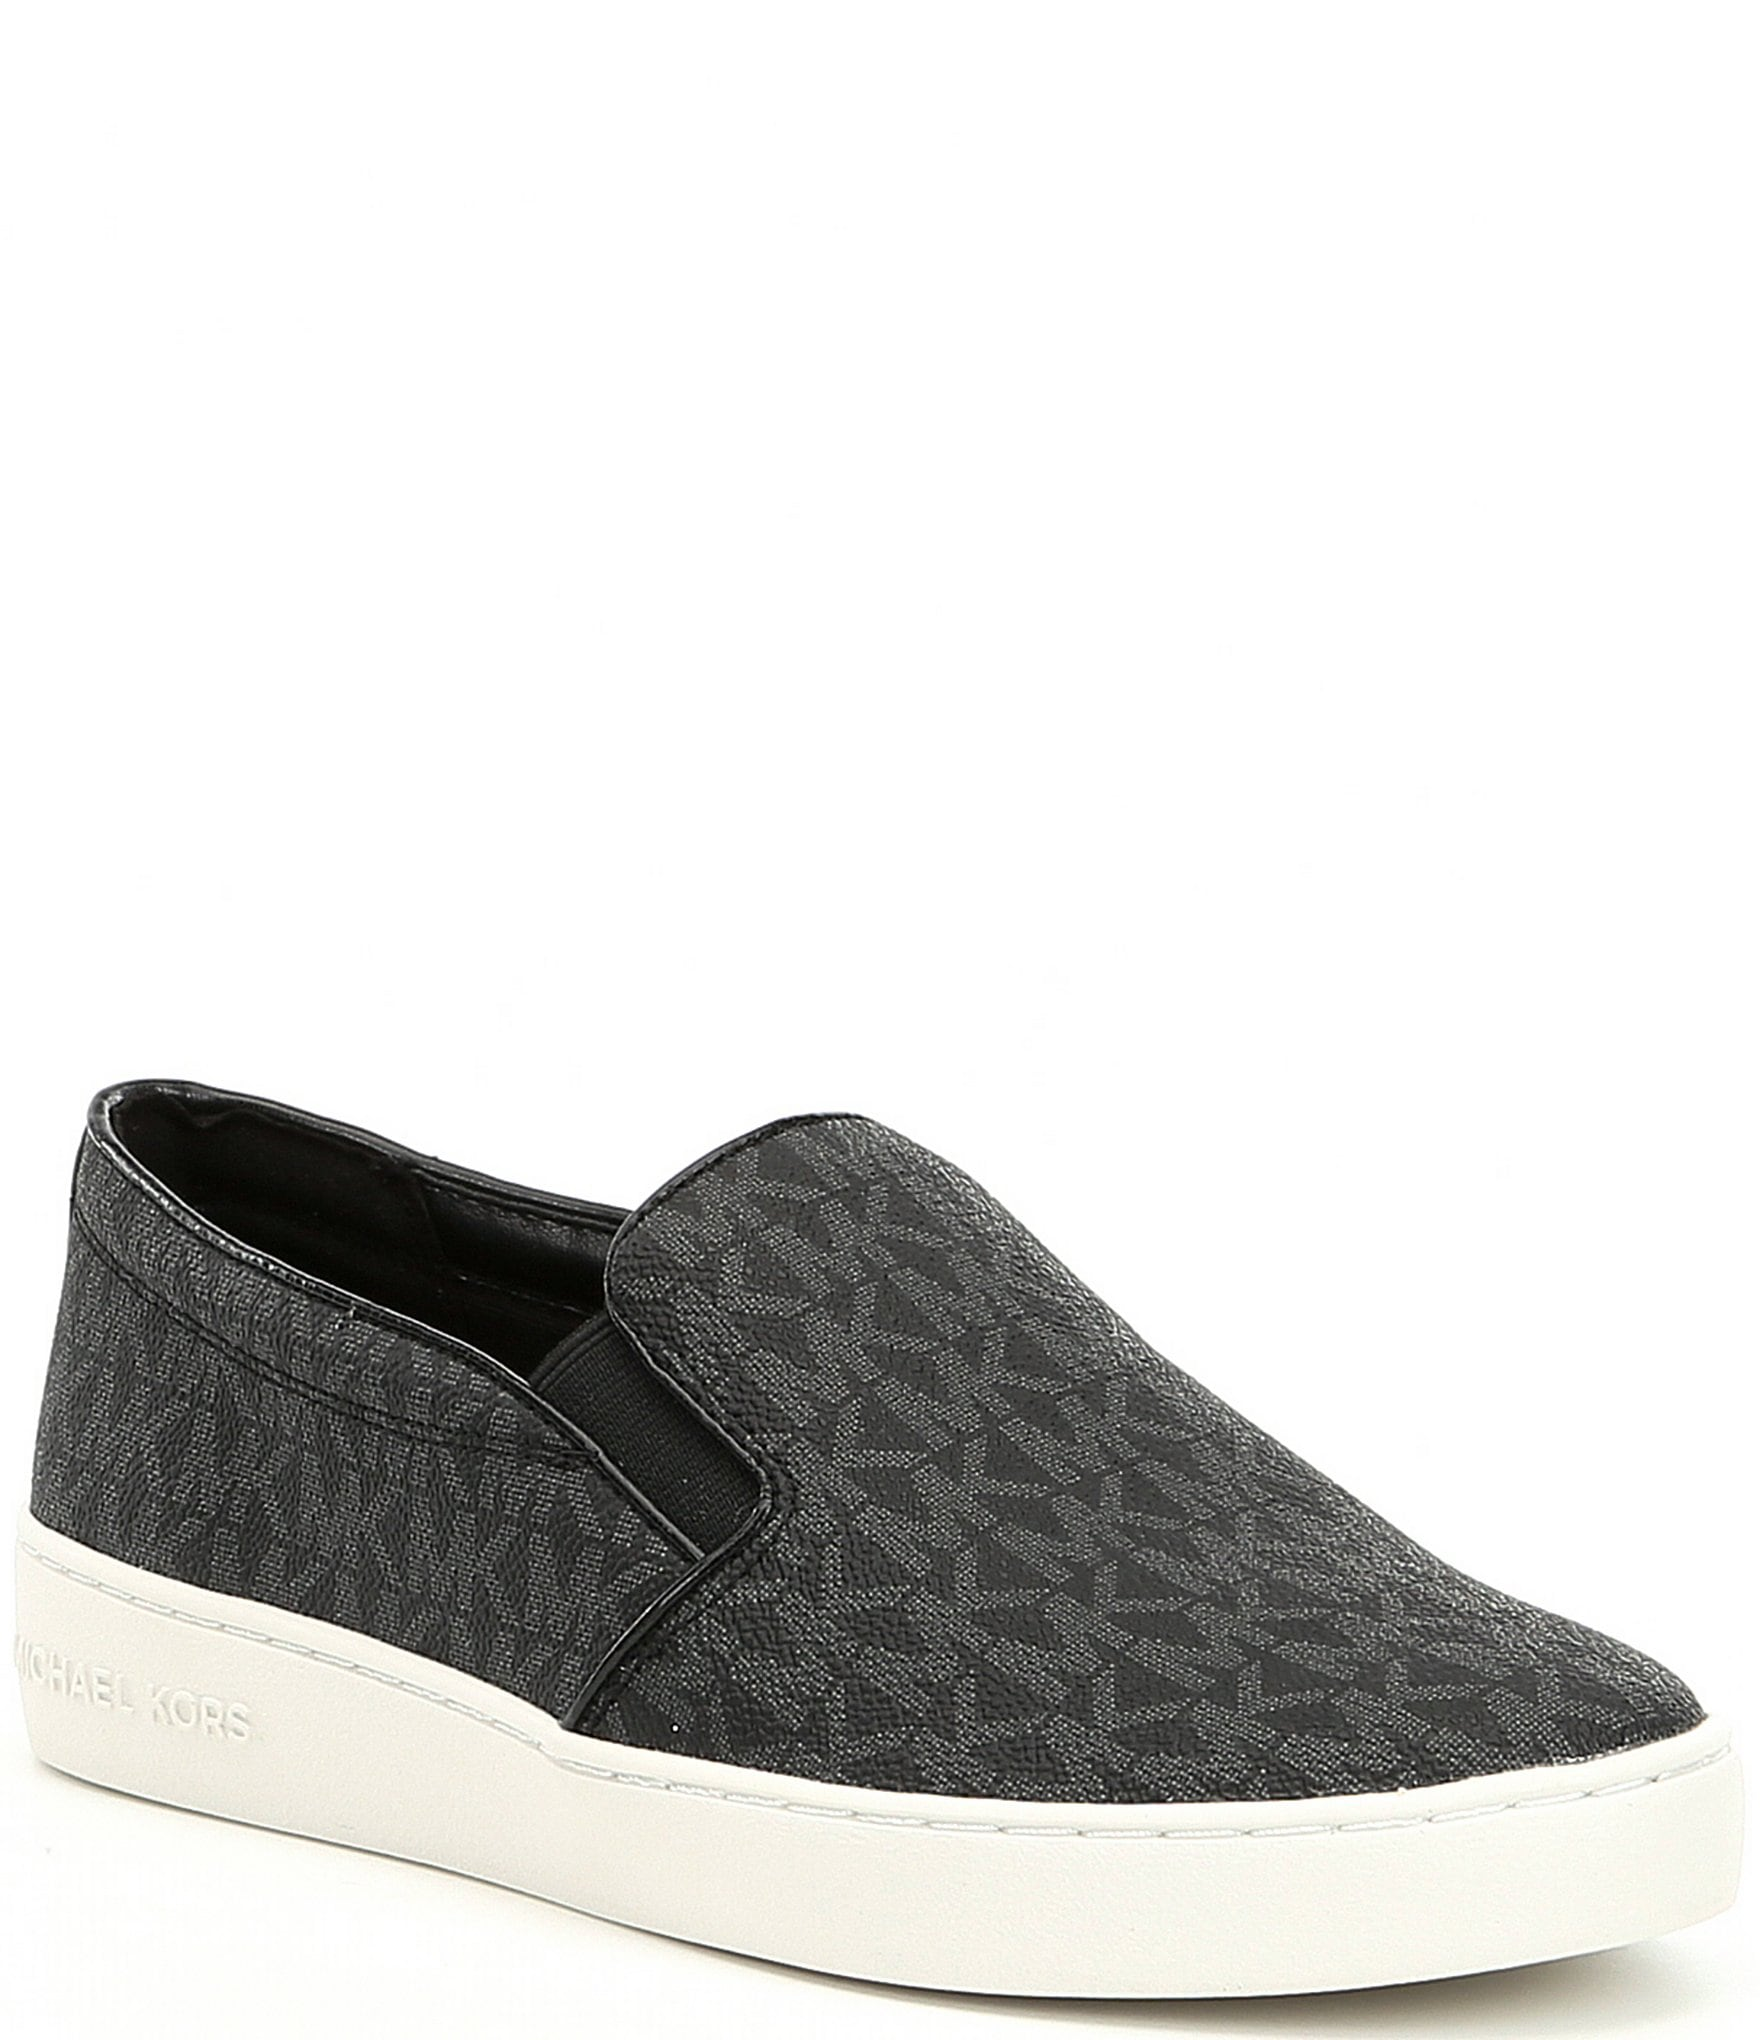 dde3db01e29c1 MICHAEL Michael Kors Keaton Slip-On Sneakers